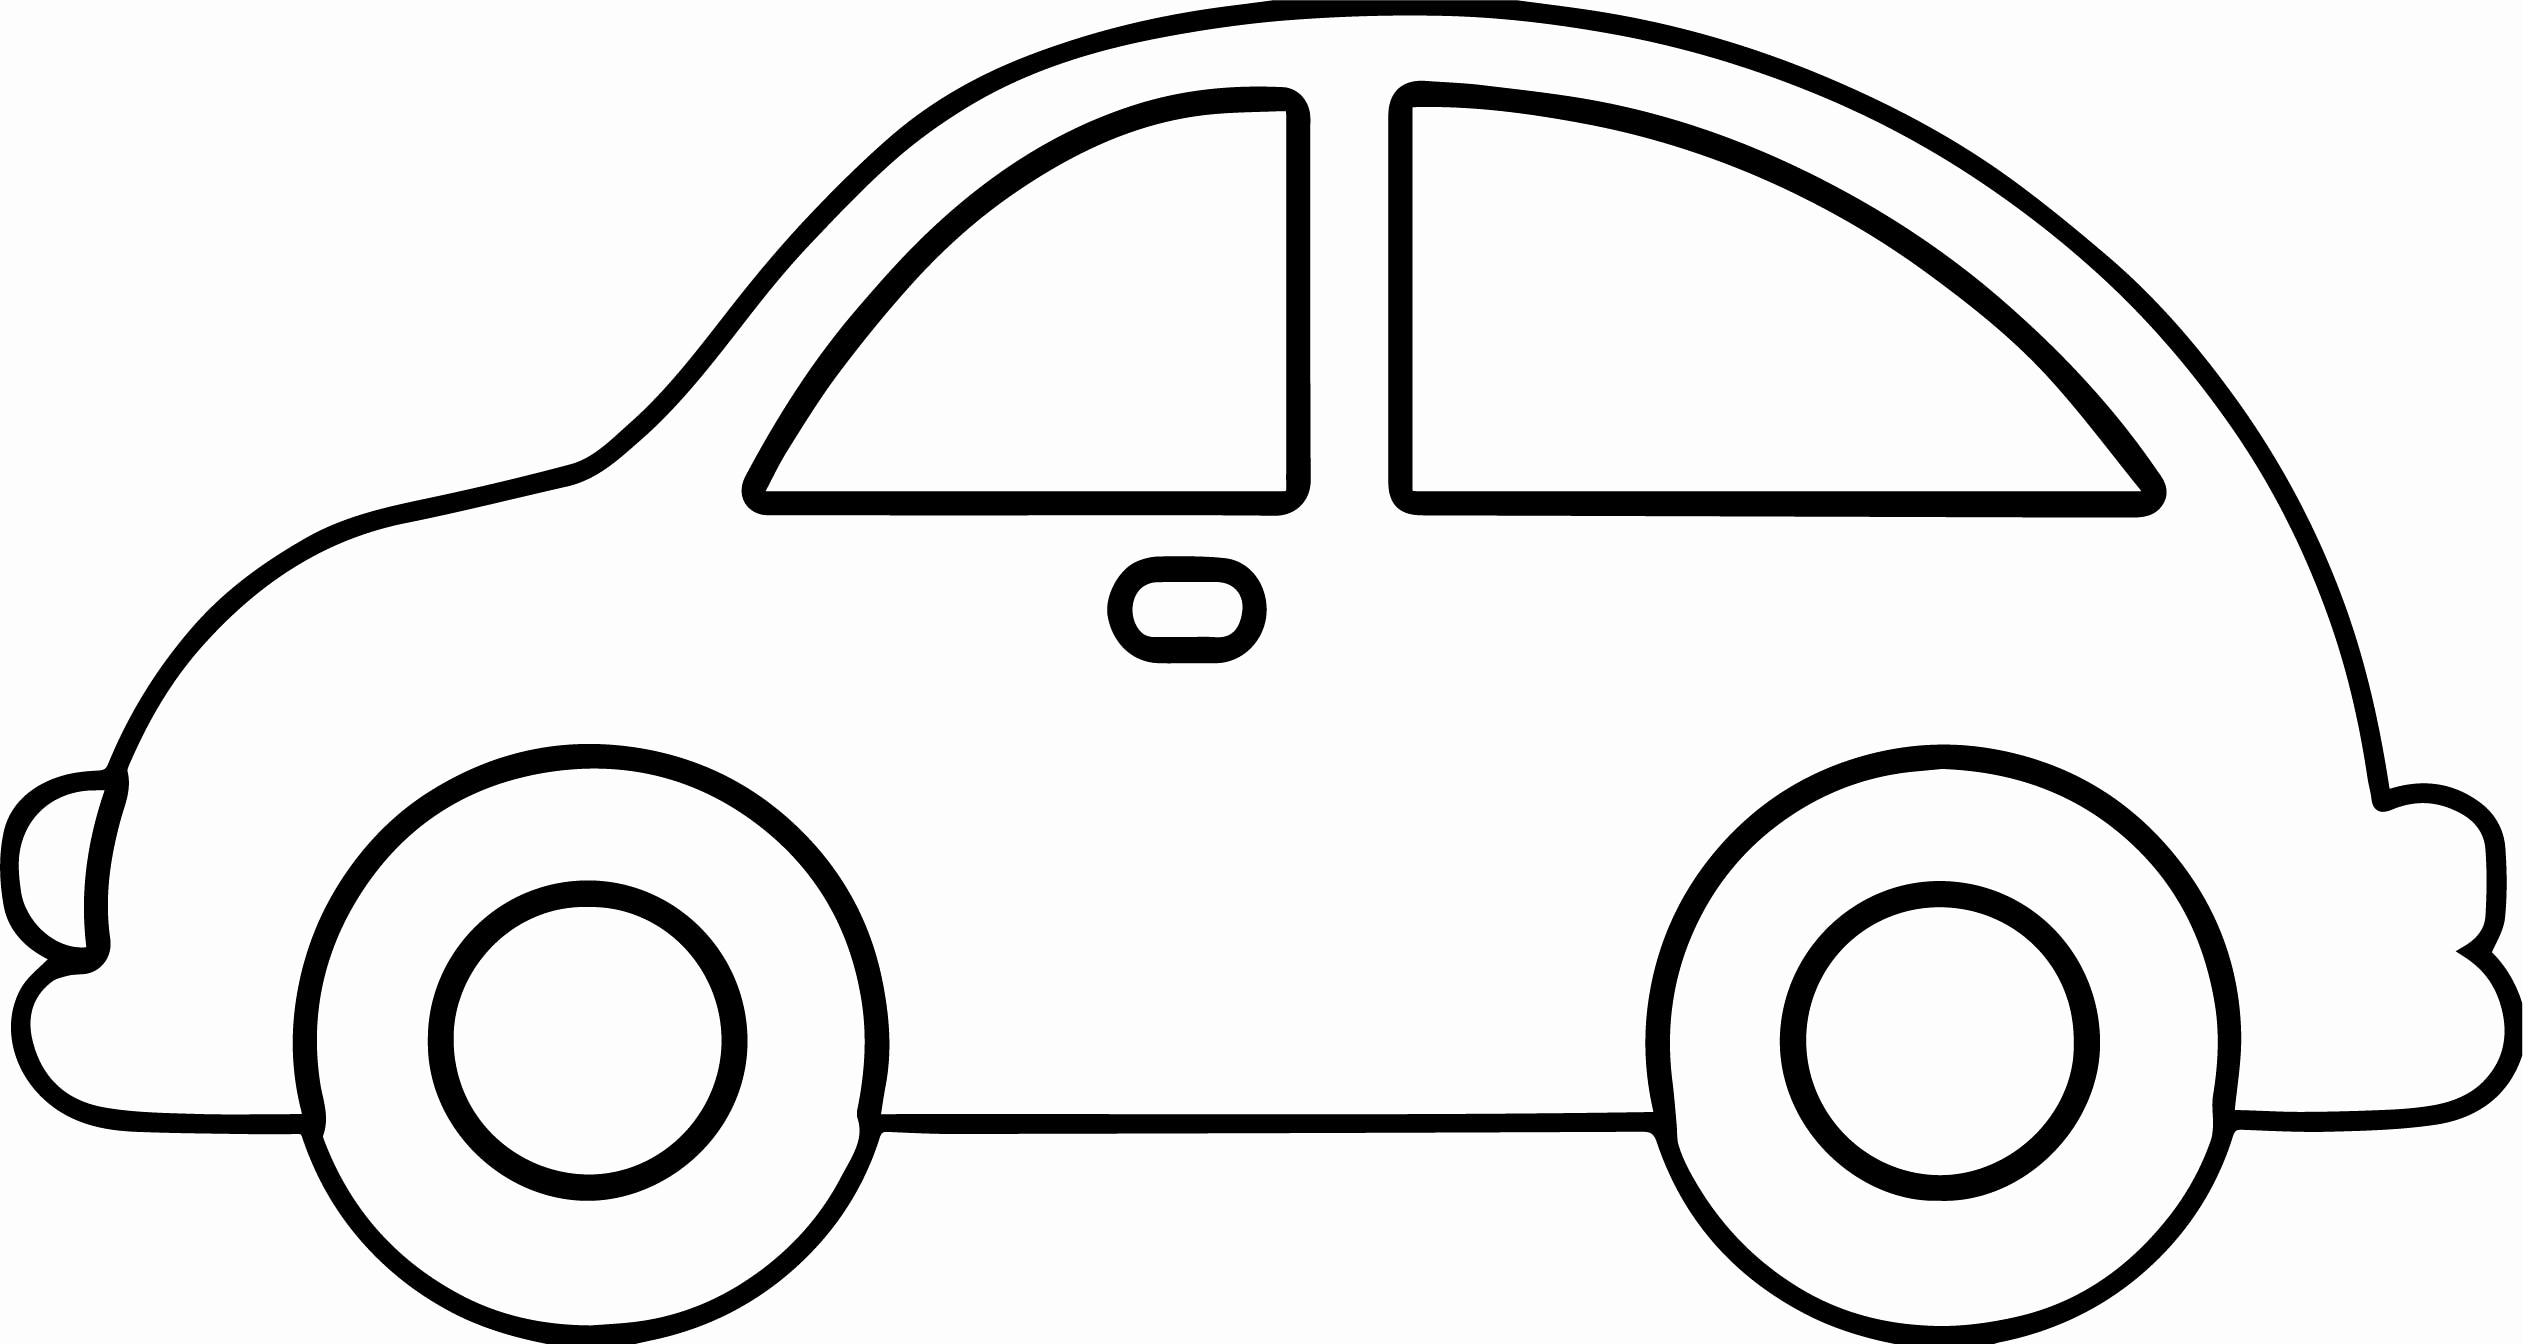 2523x1344 Simple Car Images Best Of Simple Car Drawing Step Step